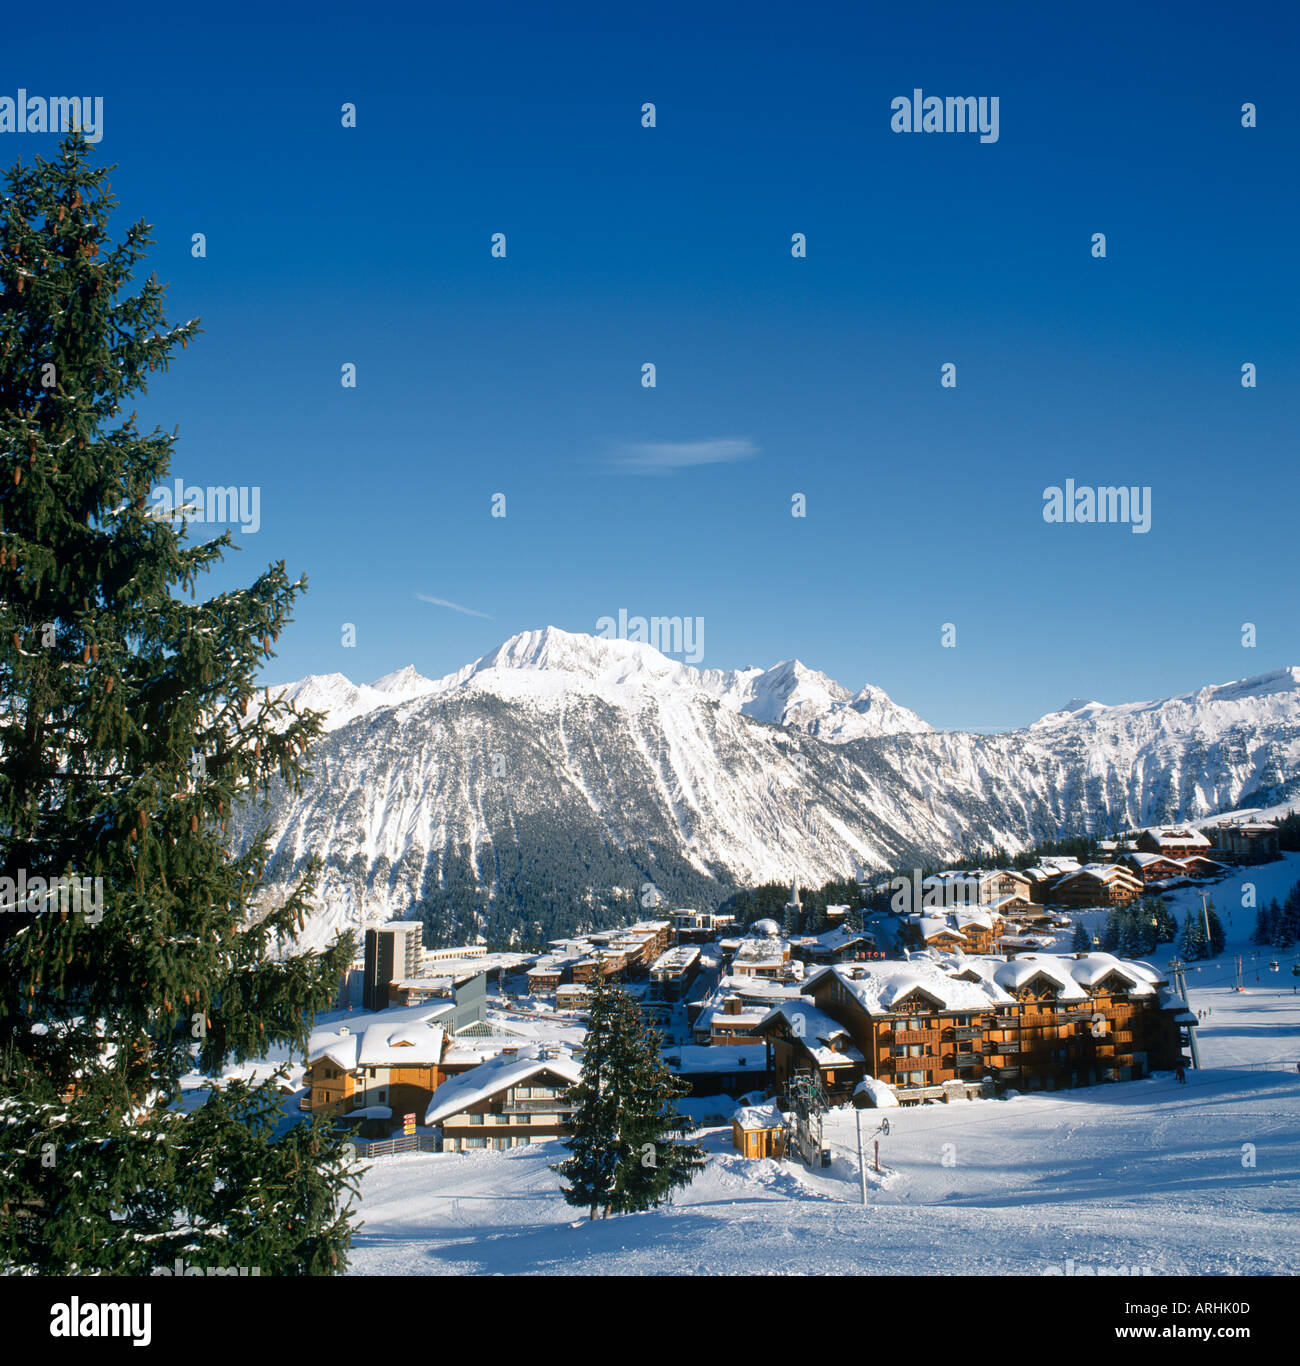 View over Resort Centre, Courchevel 1850, Three Valleys, Savoie, French Alps, France Stock Photo